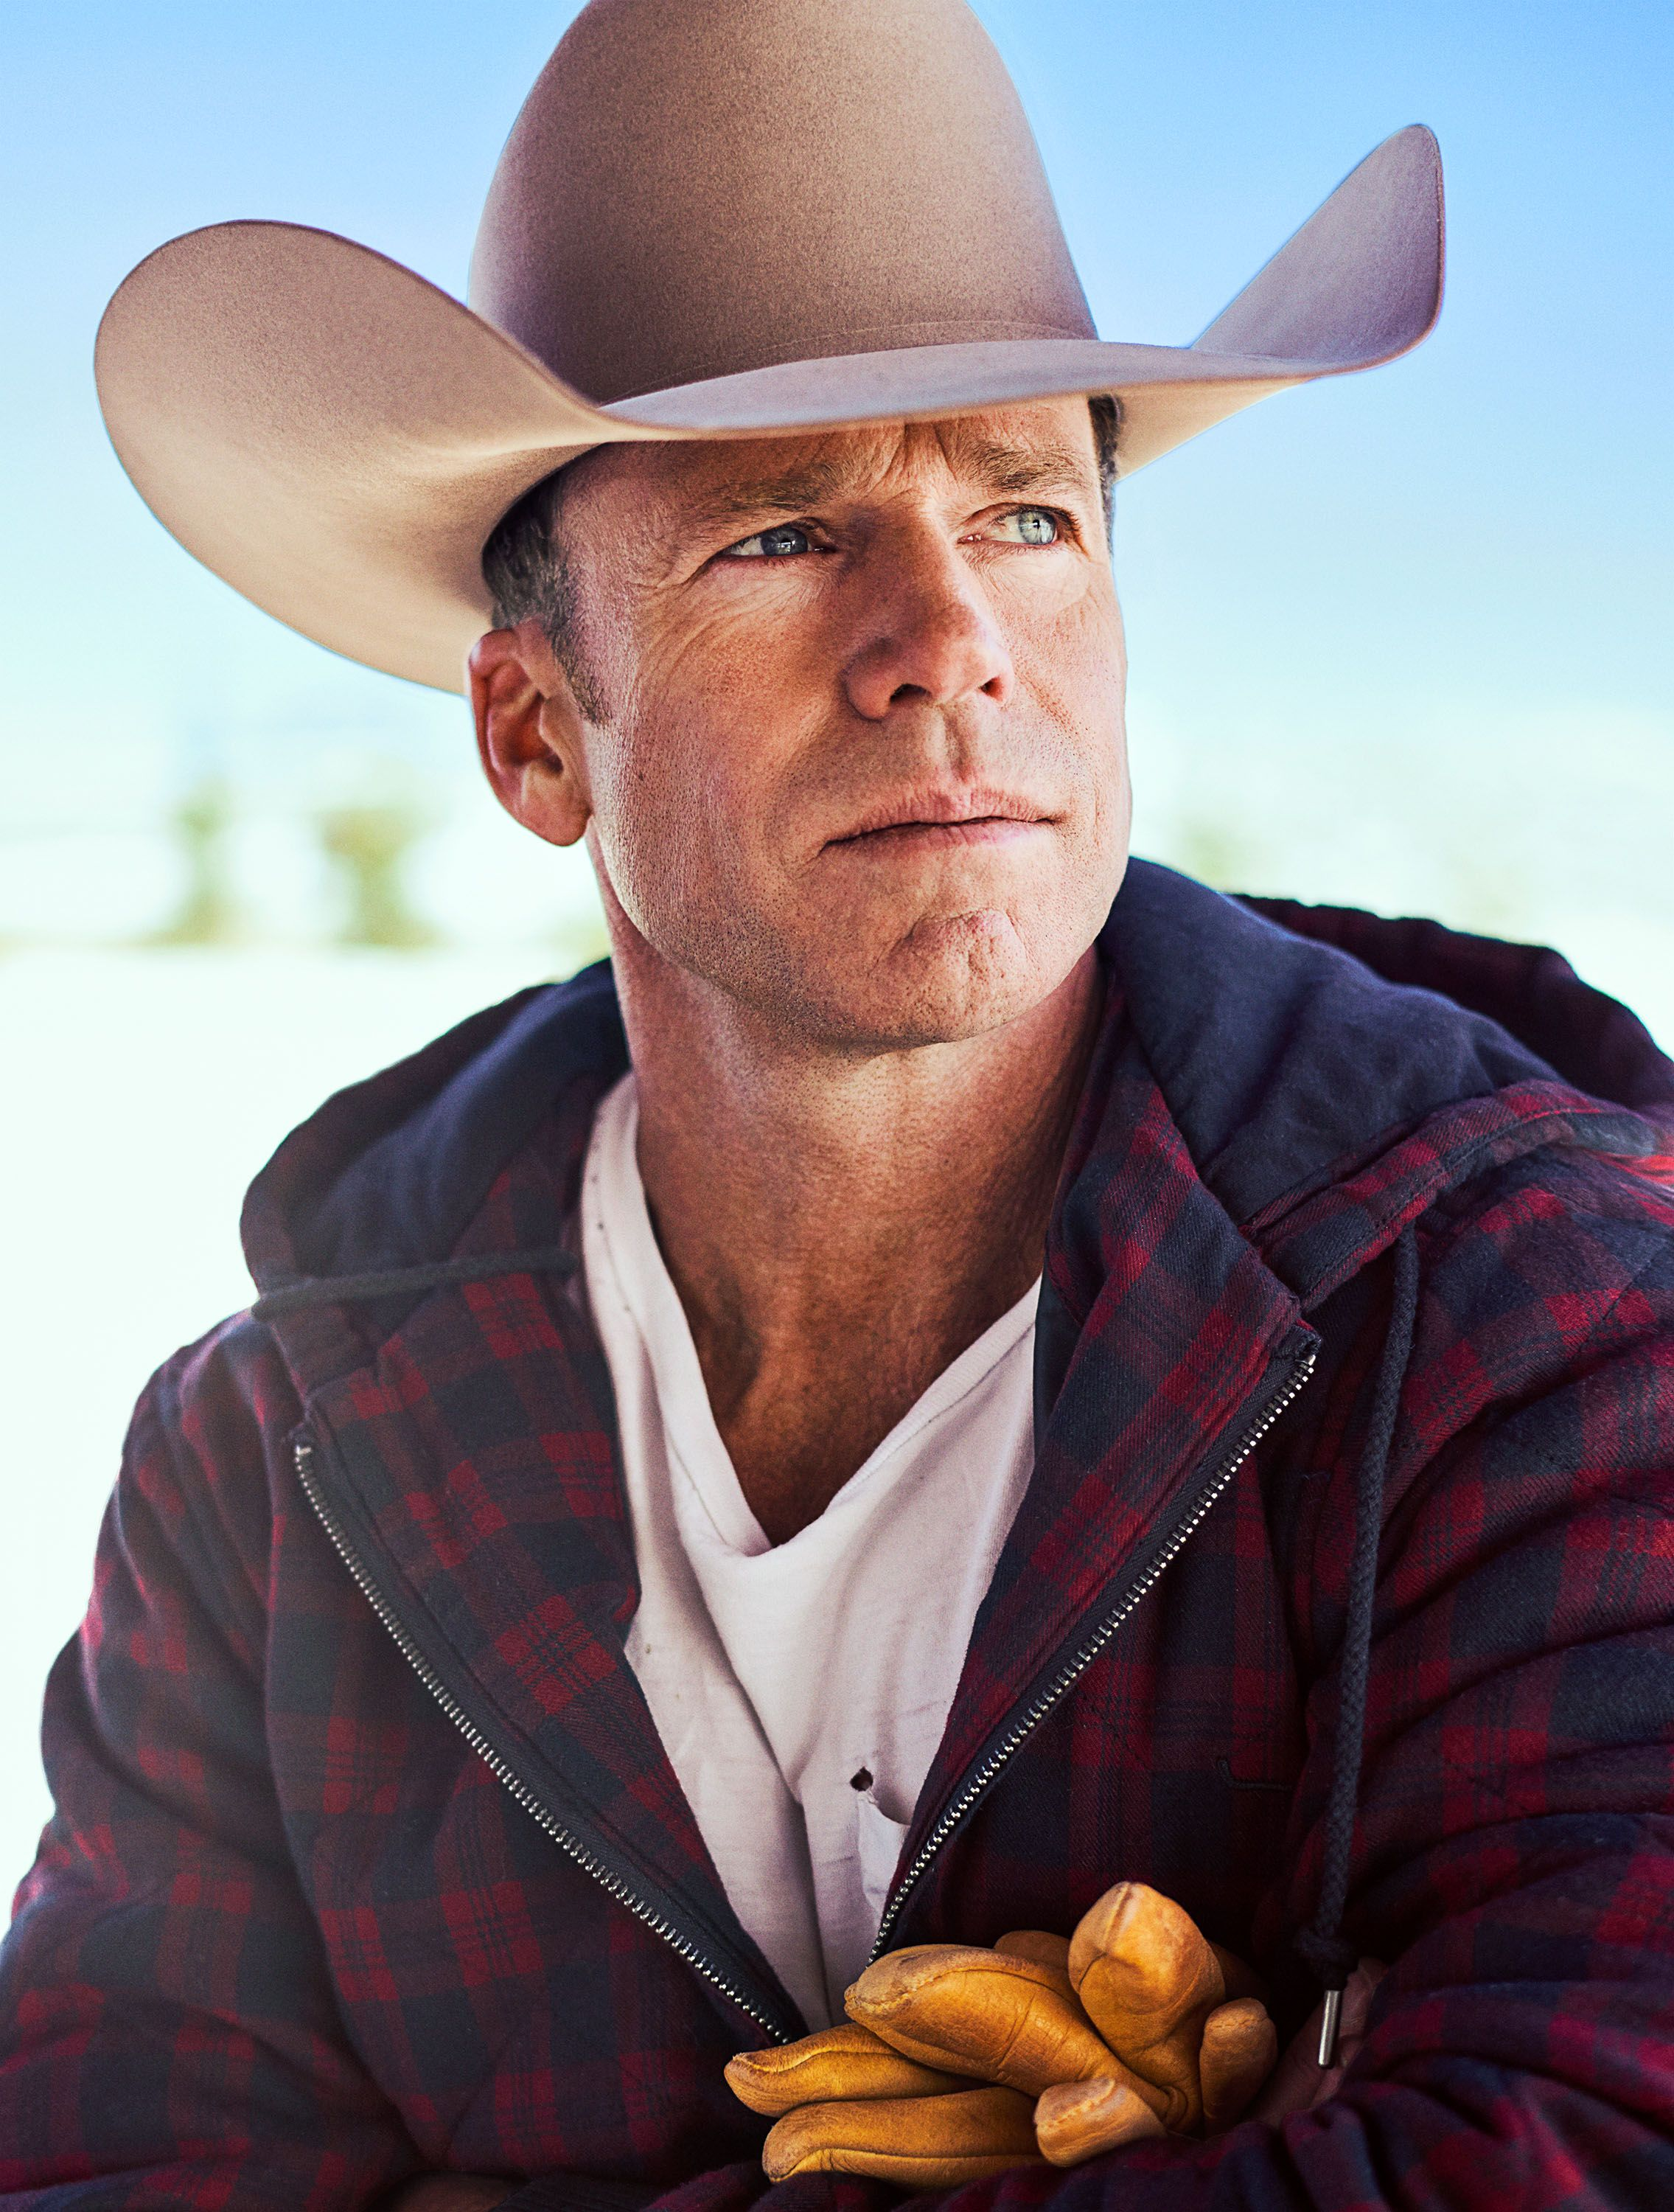 Taylor Sheridan Has Become Our Generation's Greatest Western Storyteller